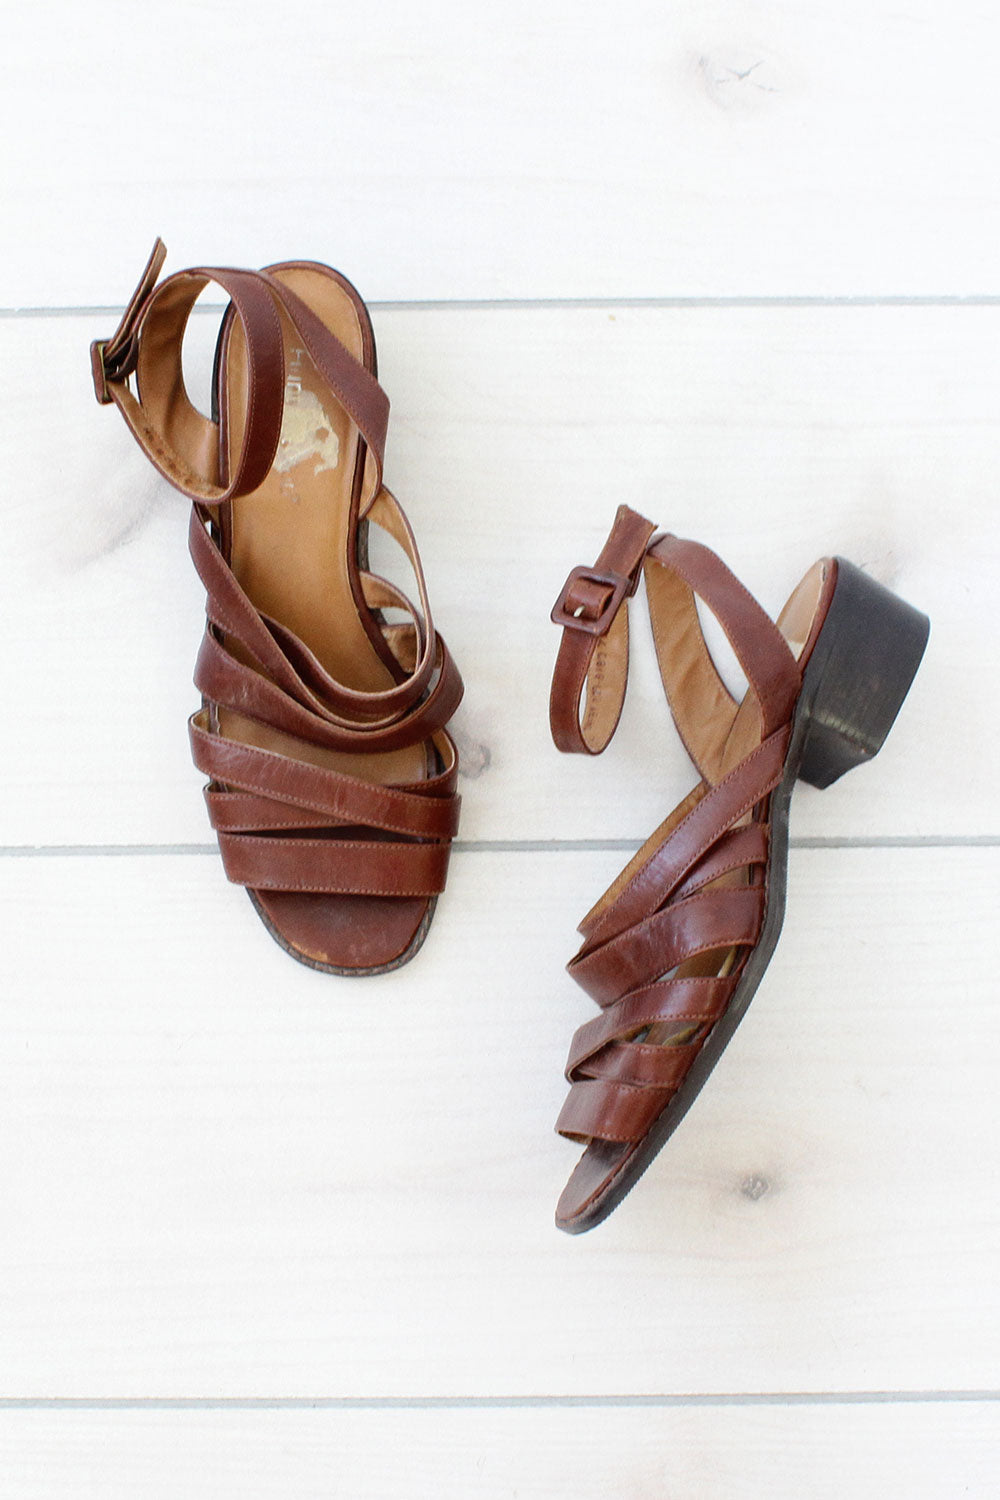 Strappy Leather Sandals 8 1/2